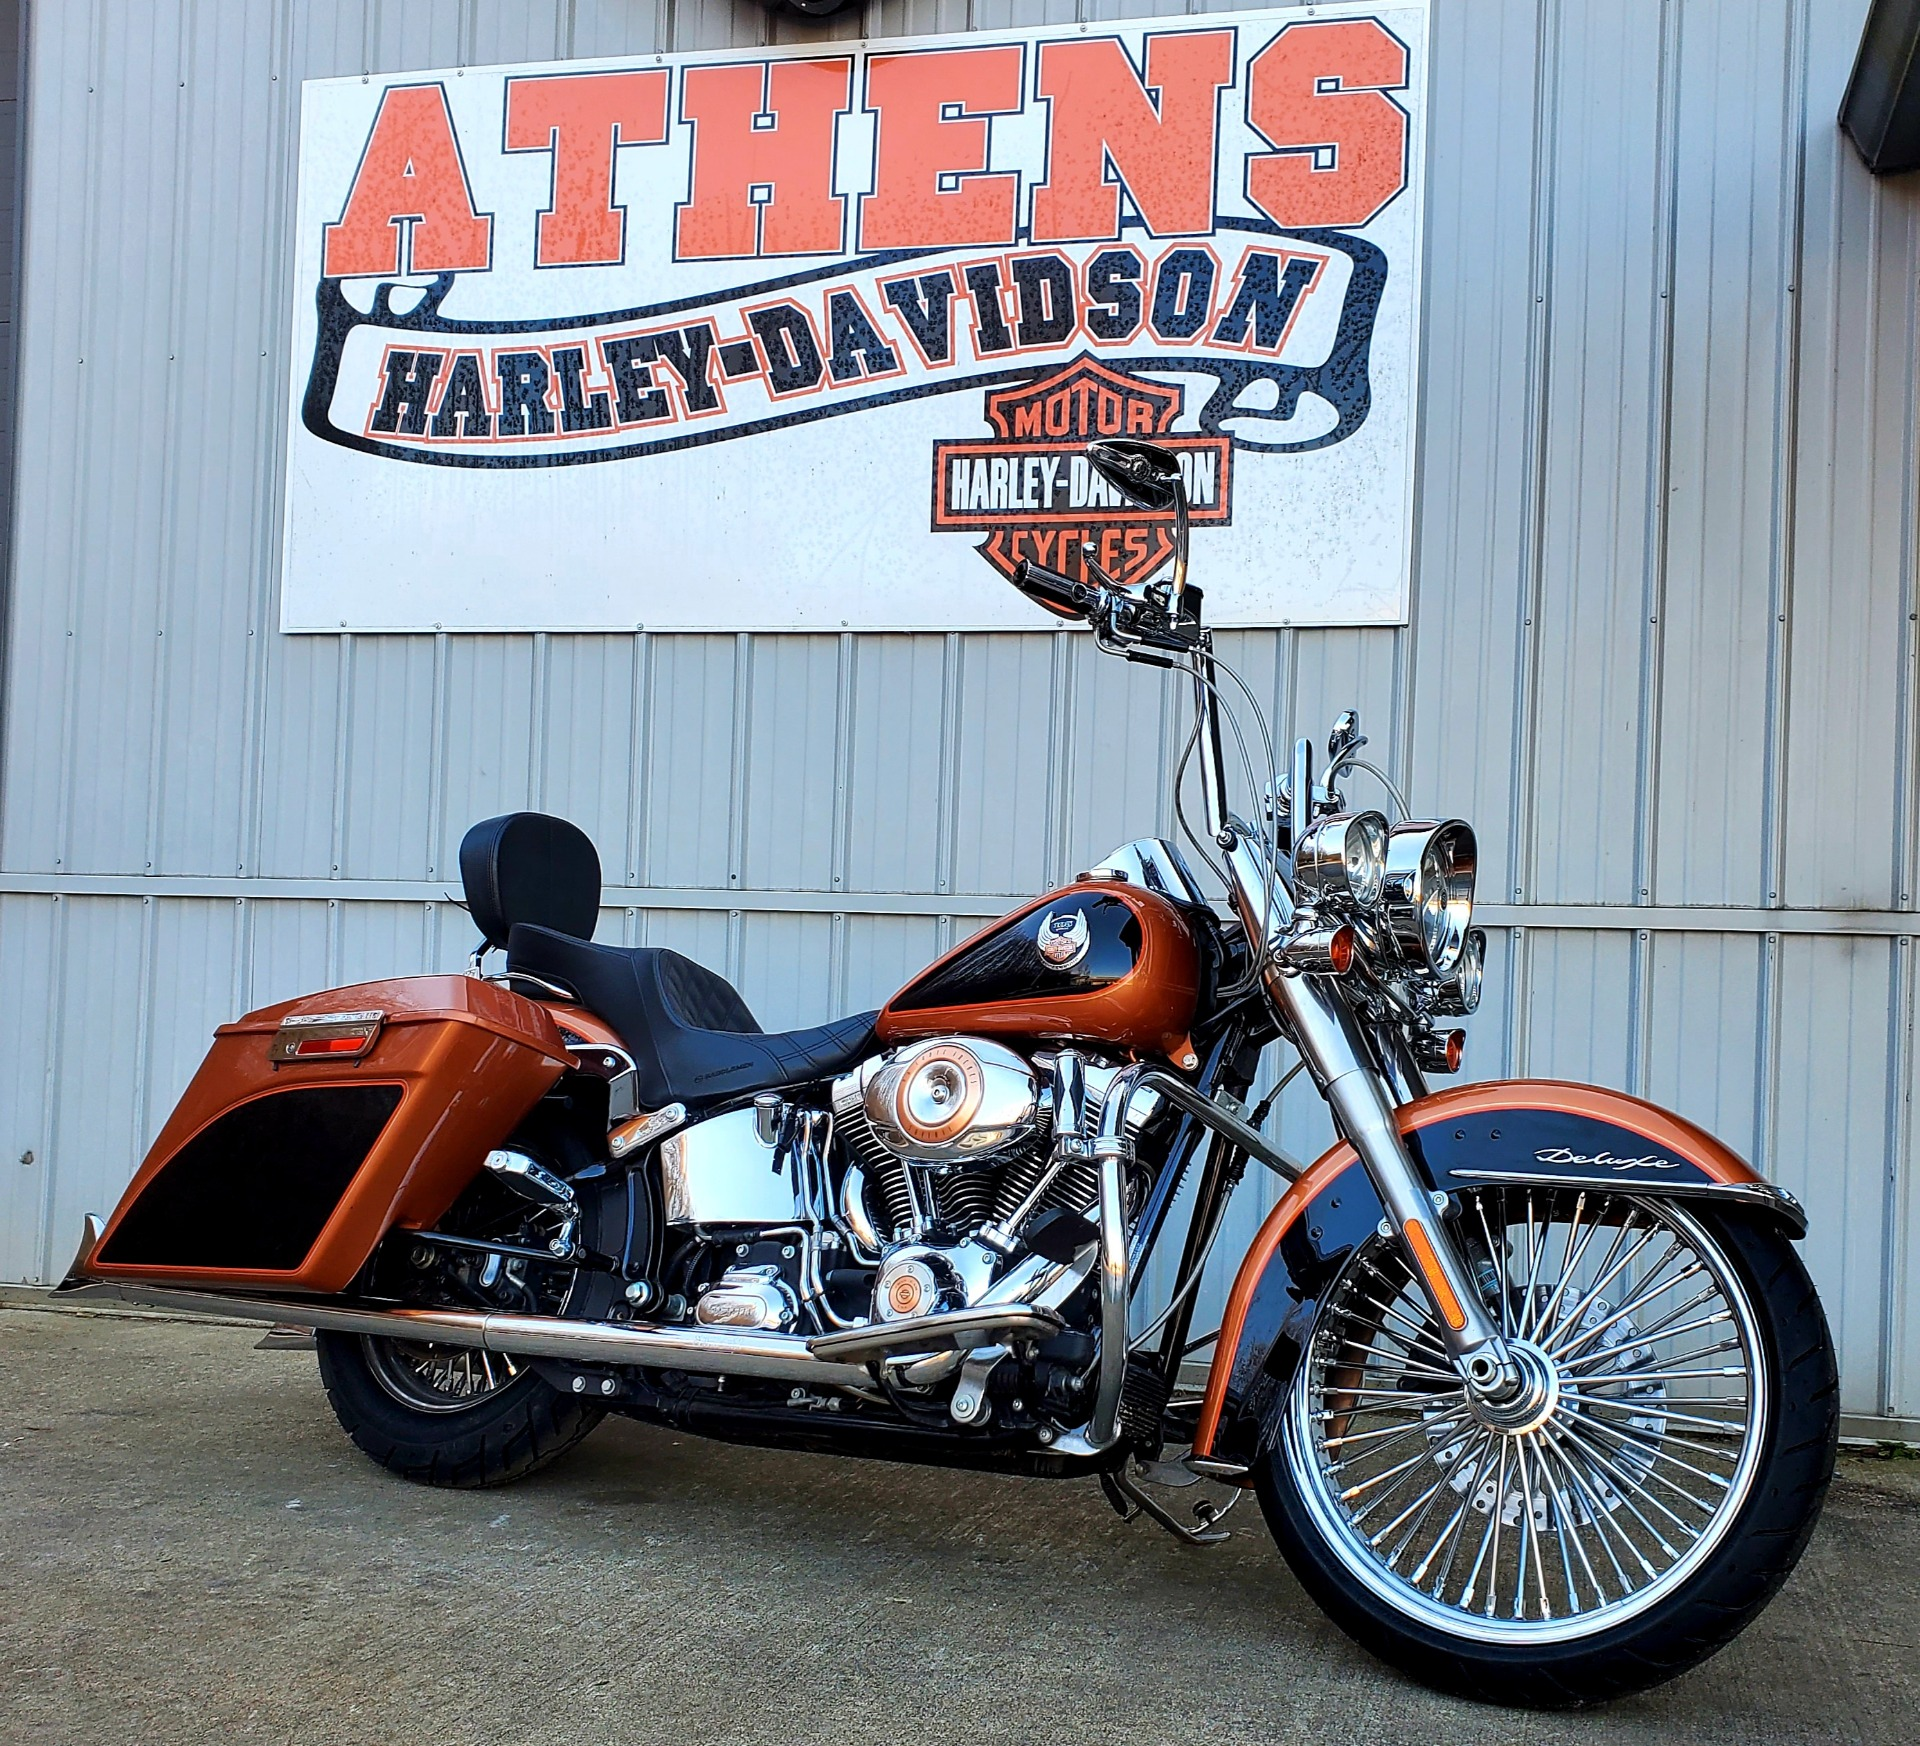 2008 Harley Davidson Softail Deluxe Motorcycles Athens Ohio N A